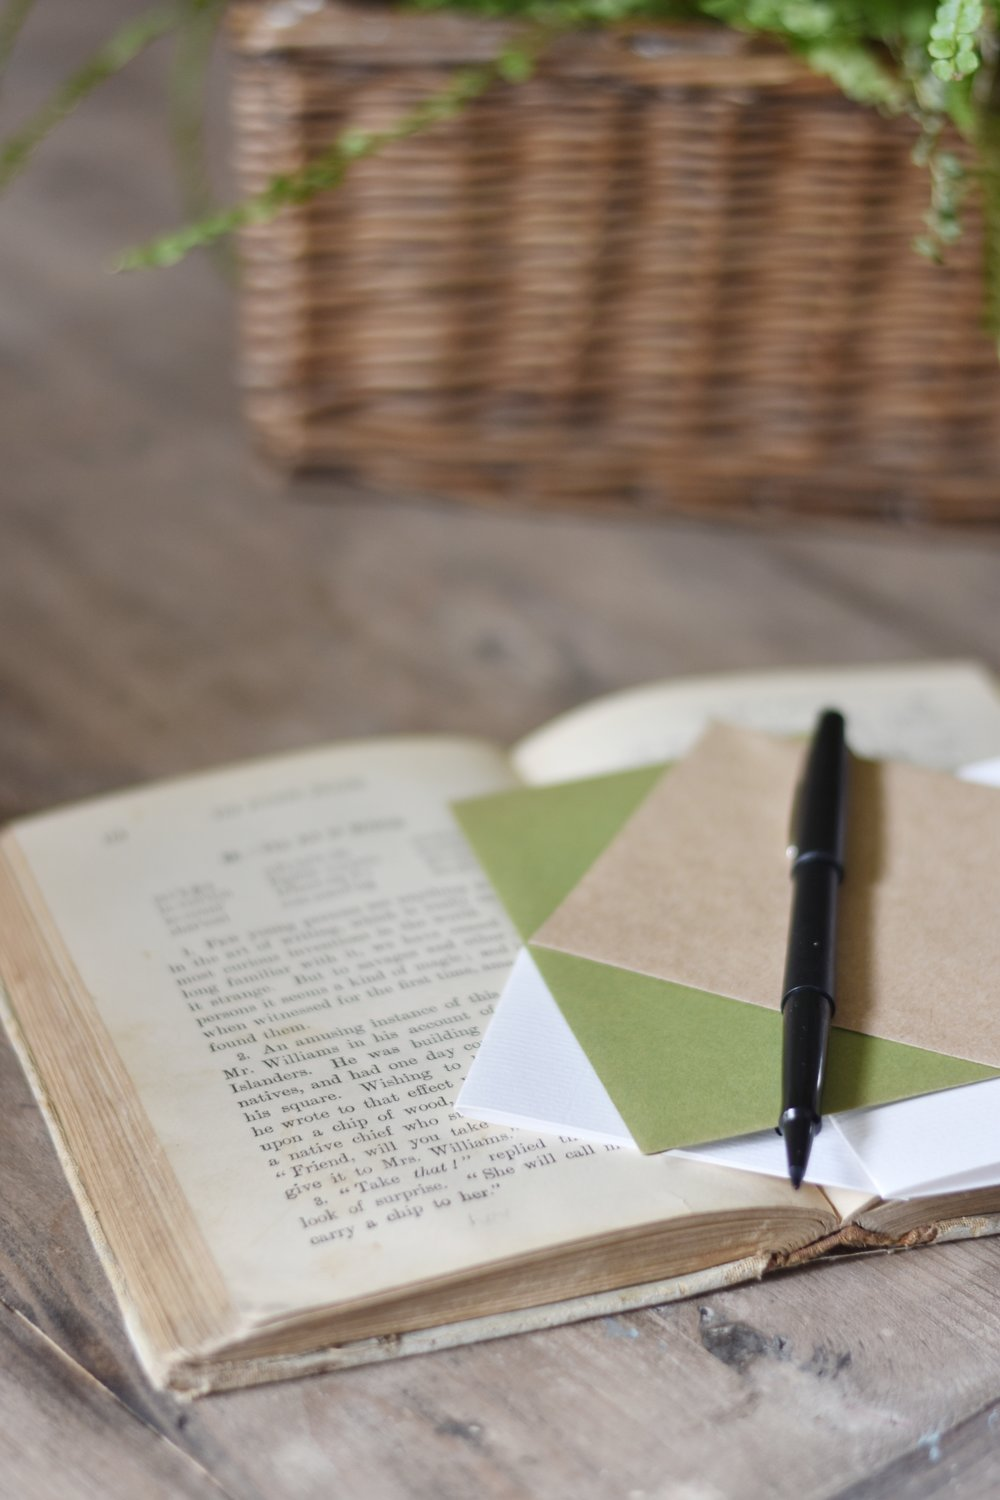 It is the digital age, but there is one personal touch that seems to be long forgotten. The art of letter writing,  it may seem old fashioned but it is a wonderful way to stay in touch.